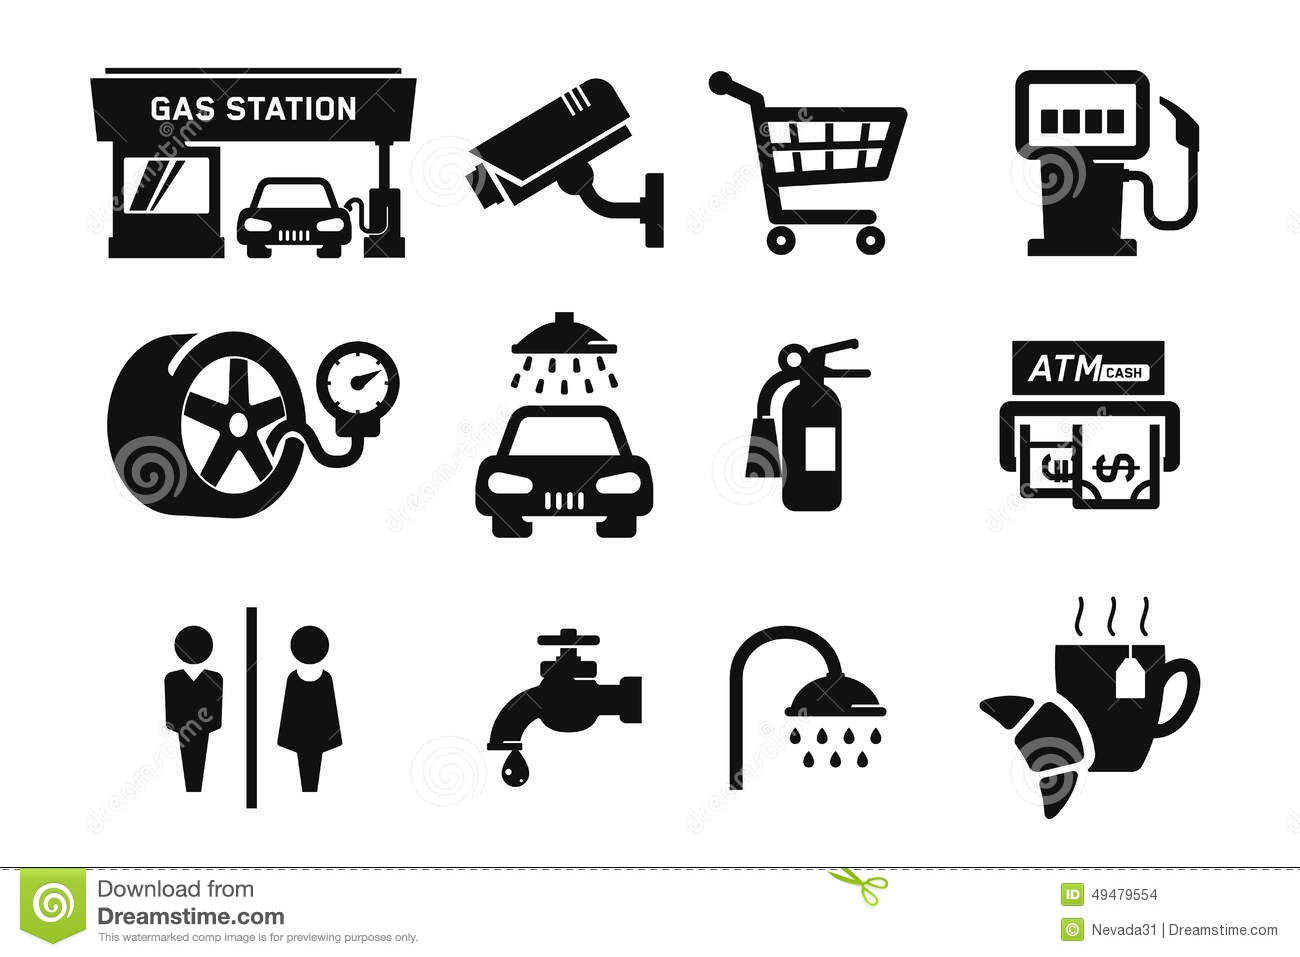 Gas station icons stock illustration. Illustration of